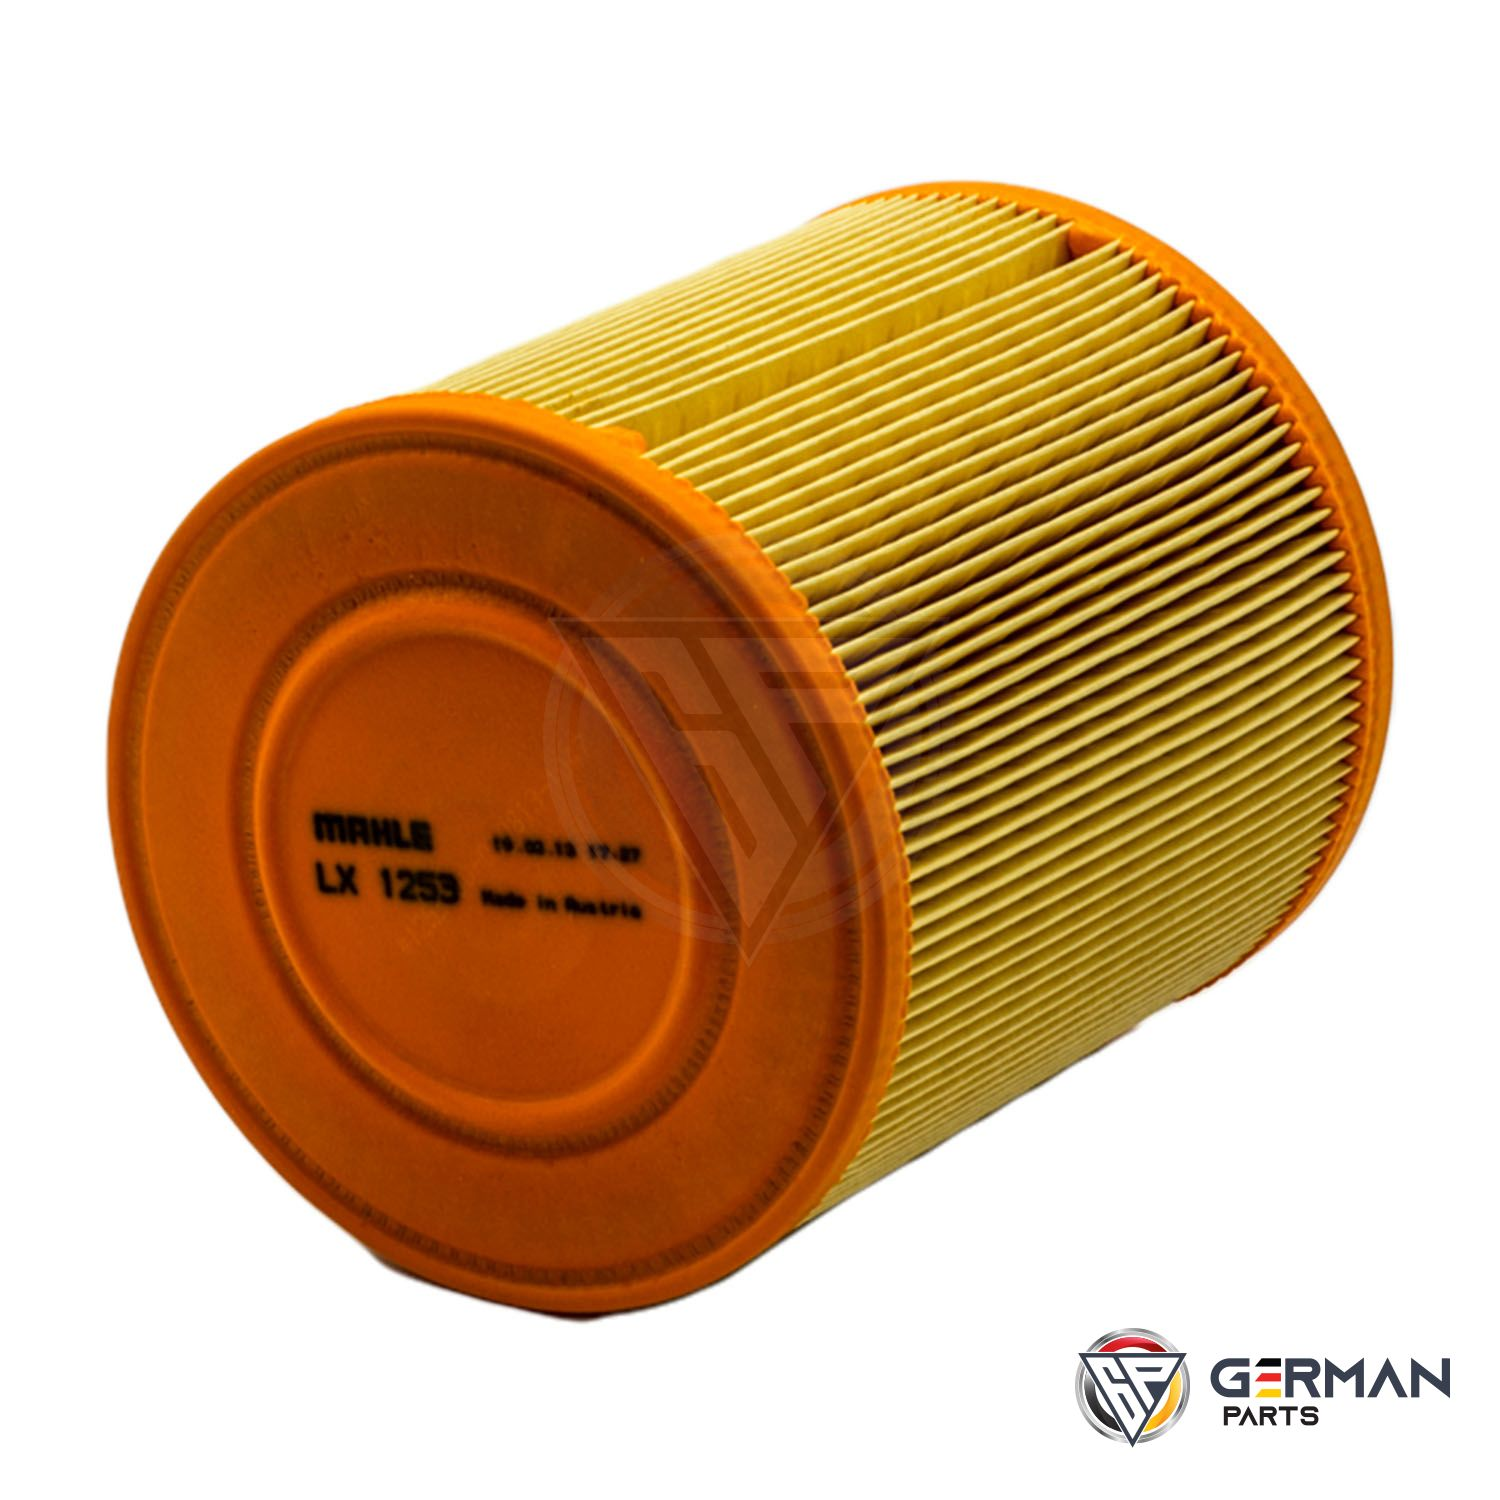 Buy Mahle Air Filter 4F0133843A - German Parts